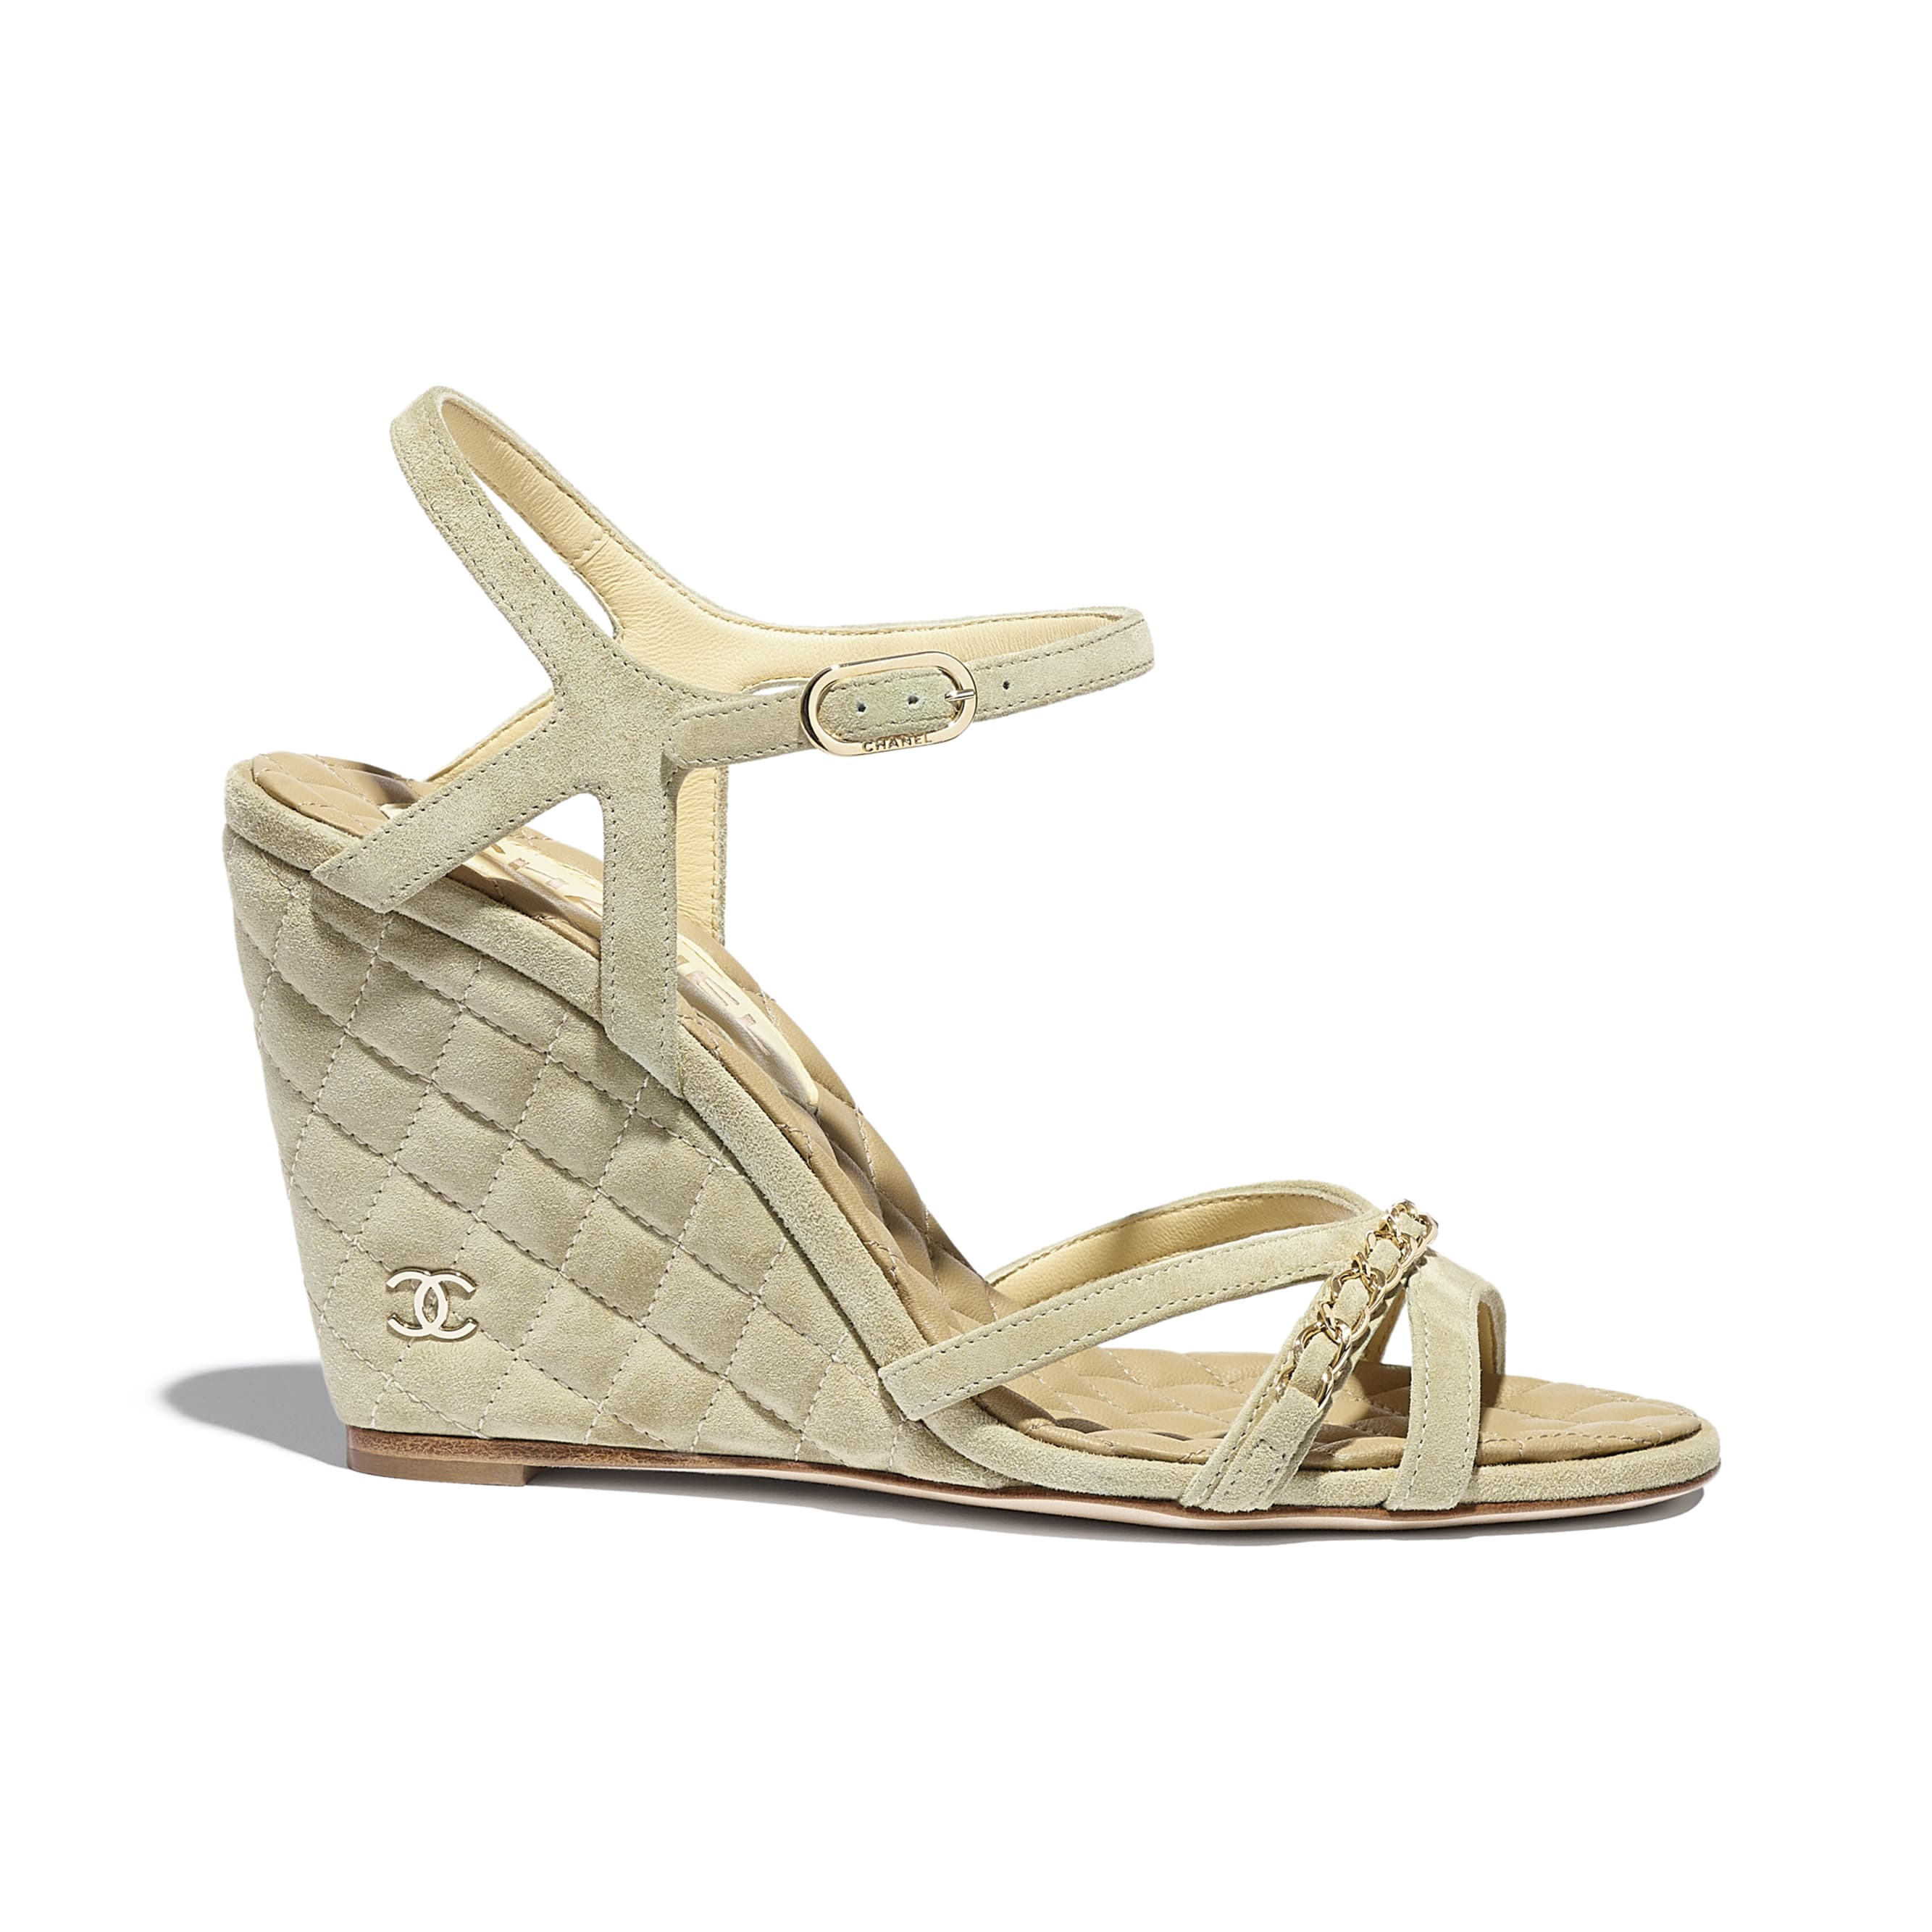 Sandals - Beige - Suede Calfskin - CHANEL - Default view - see standard sized version